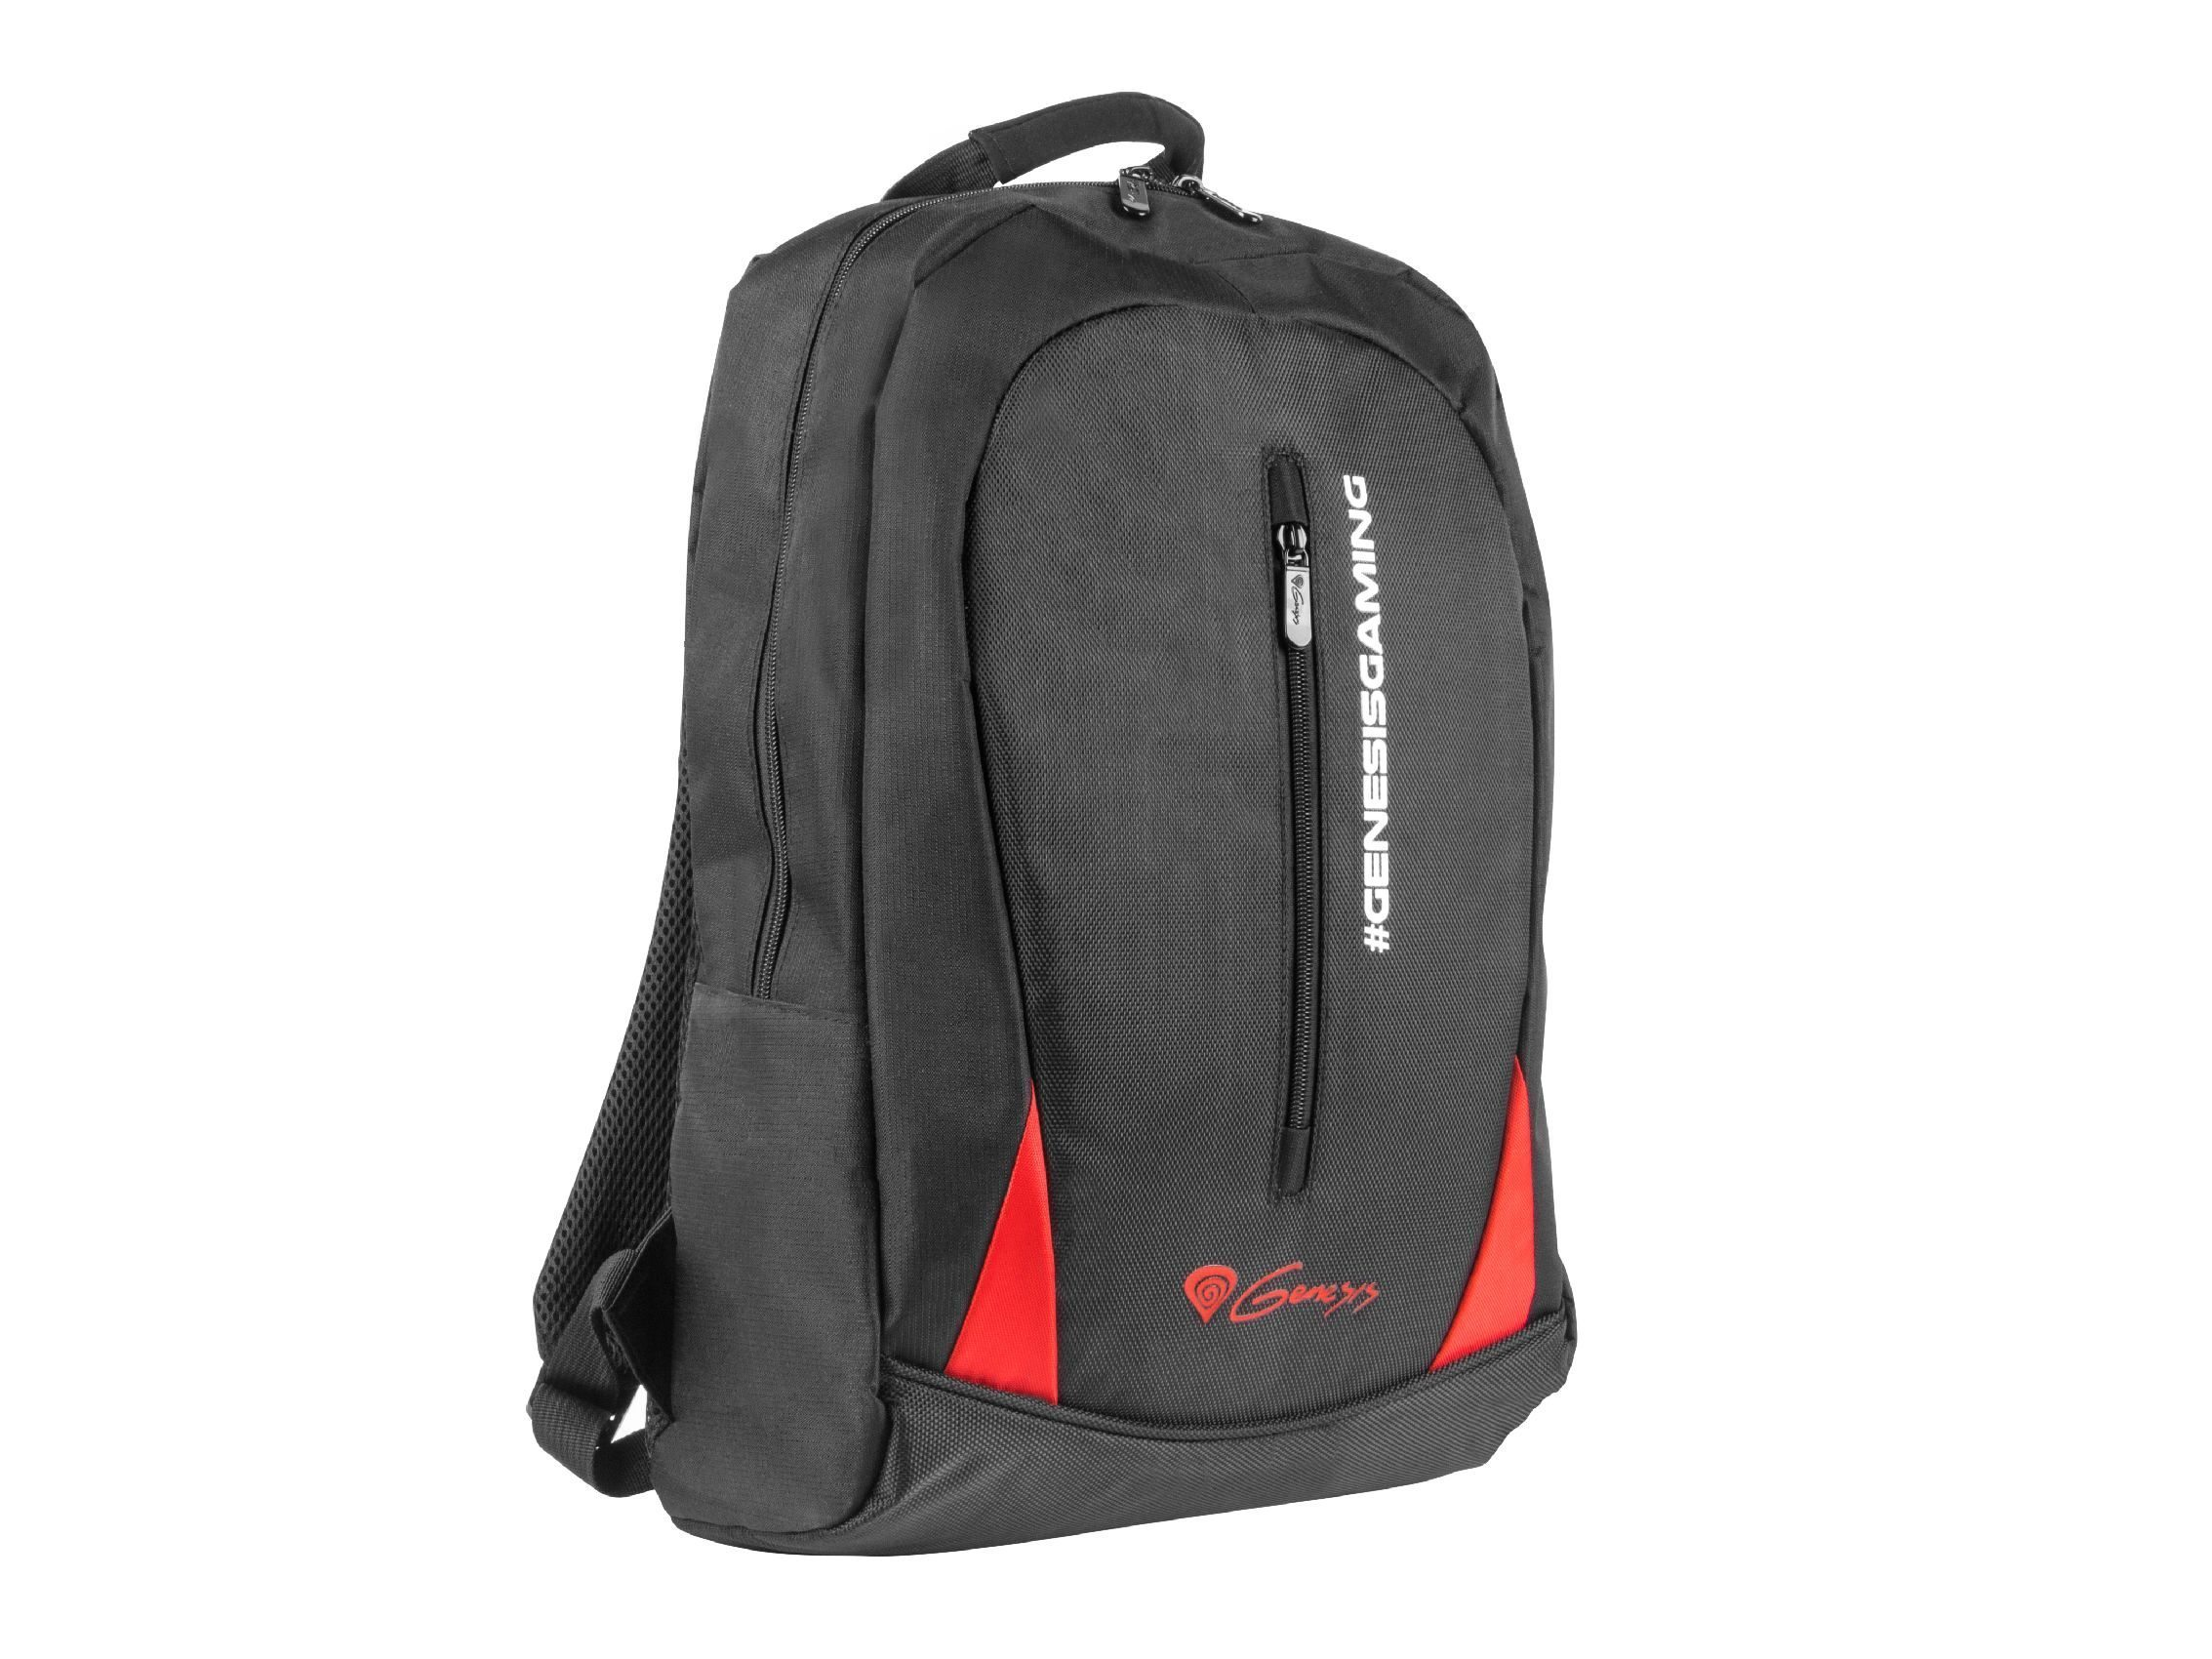 "Backpack Laptop 15.6"" - PALLAD 100 - NBG-1133"